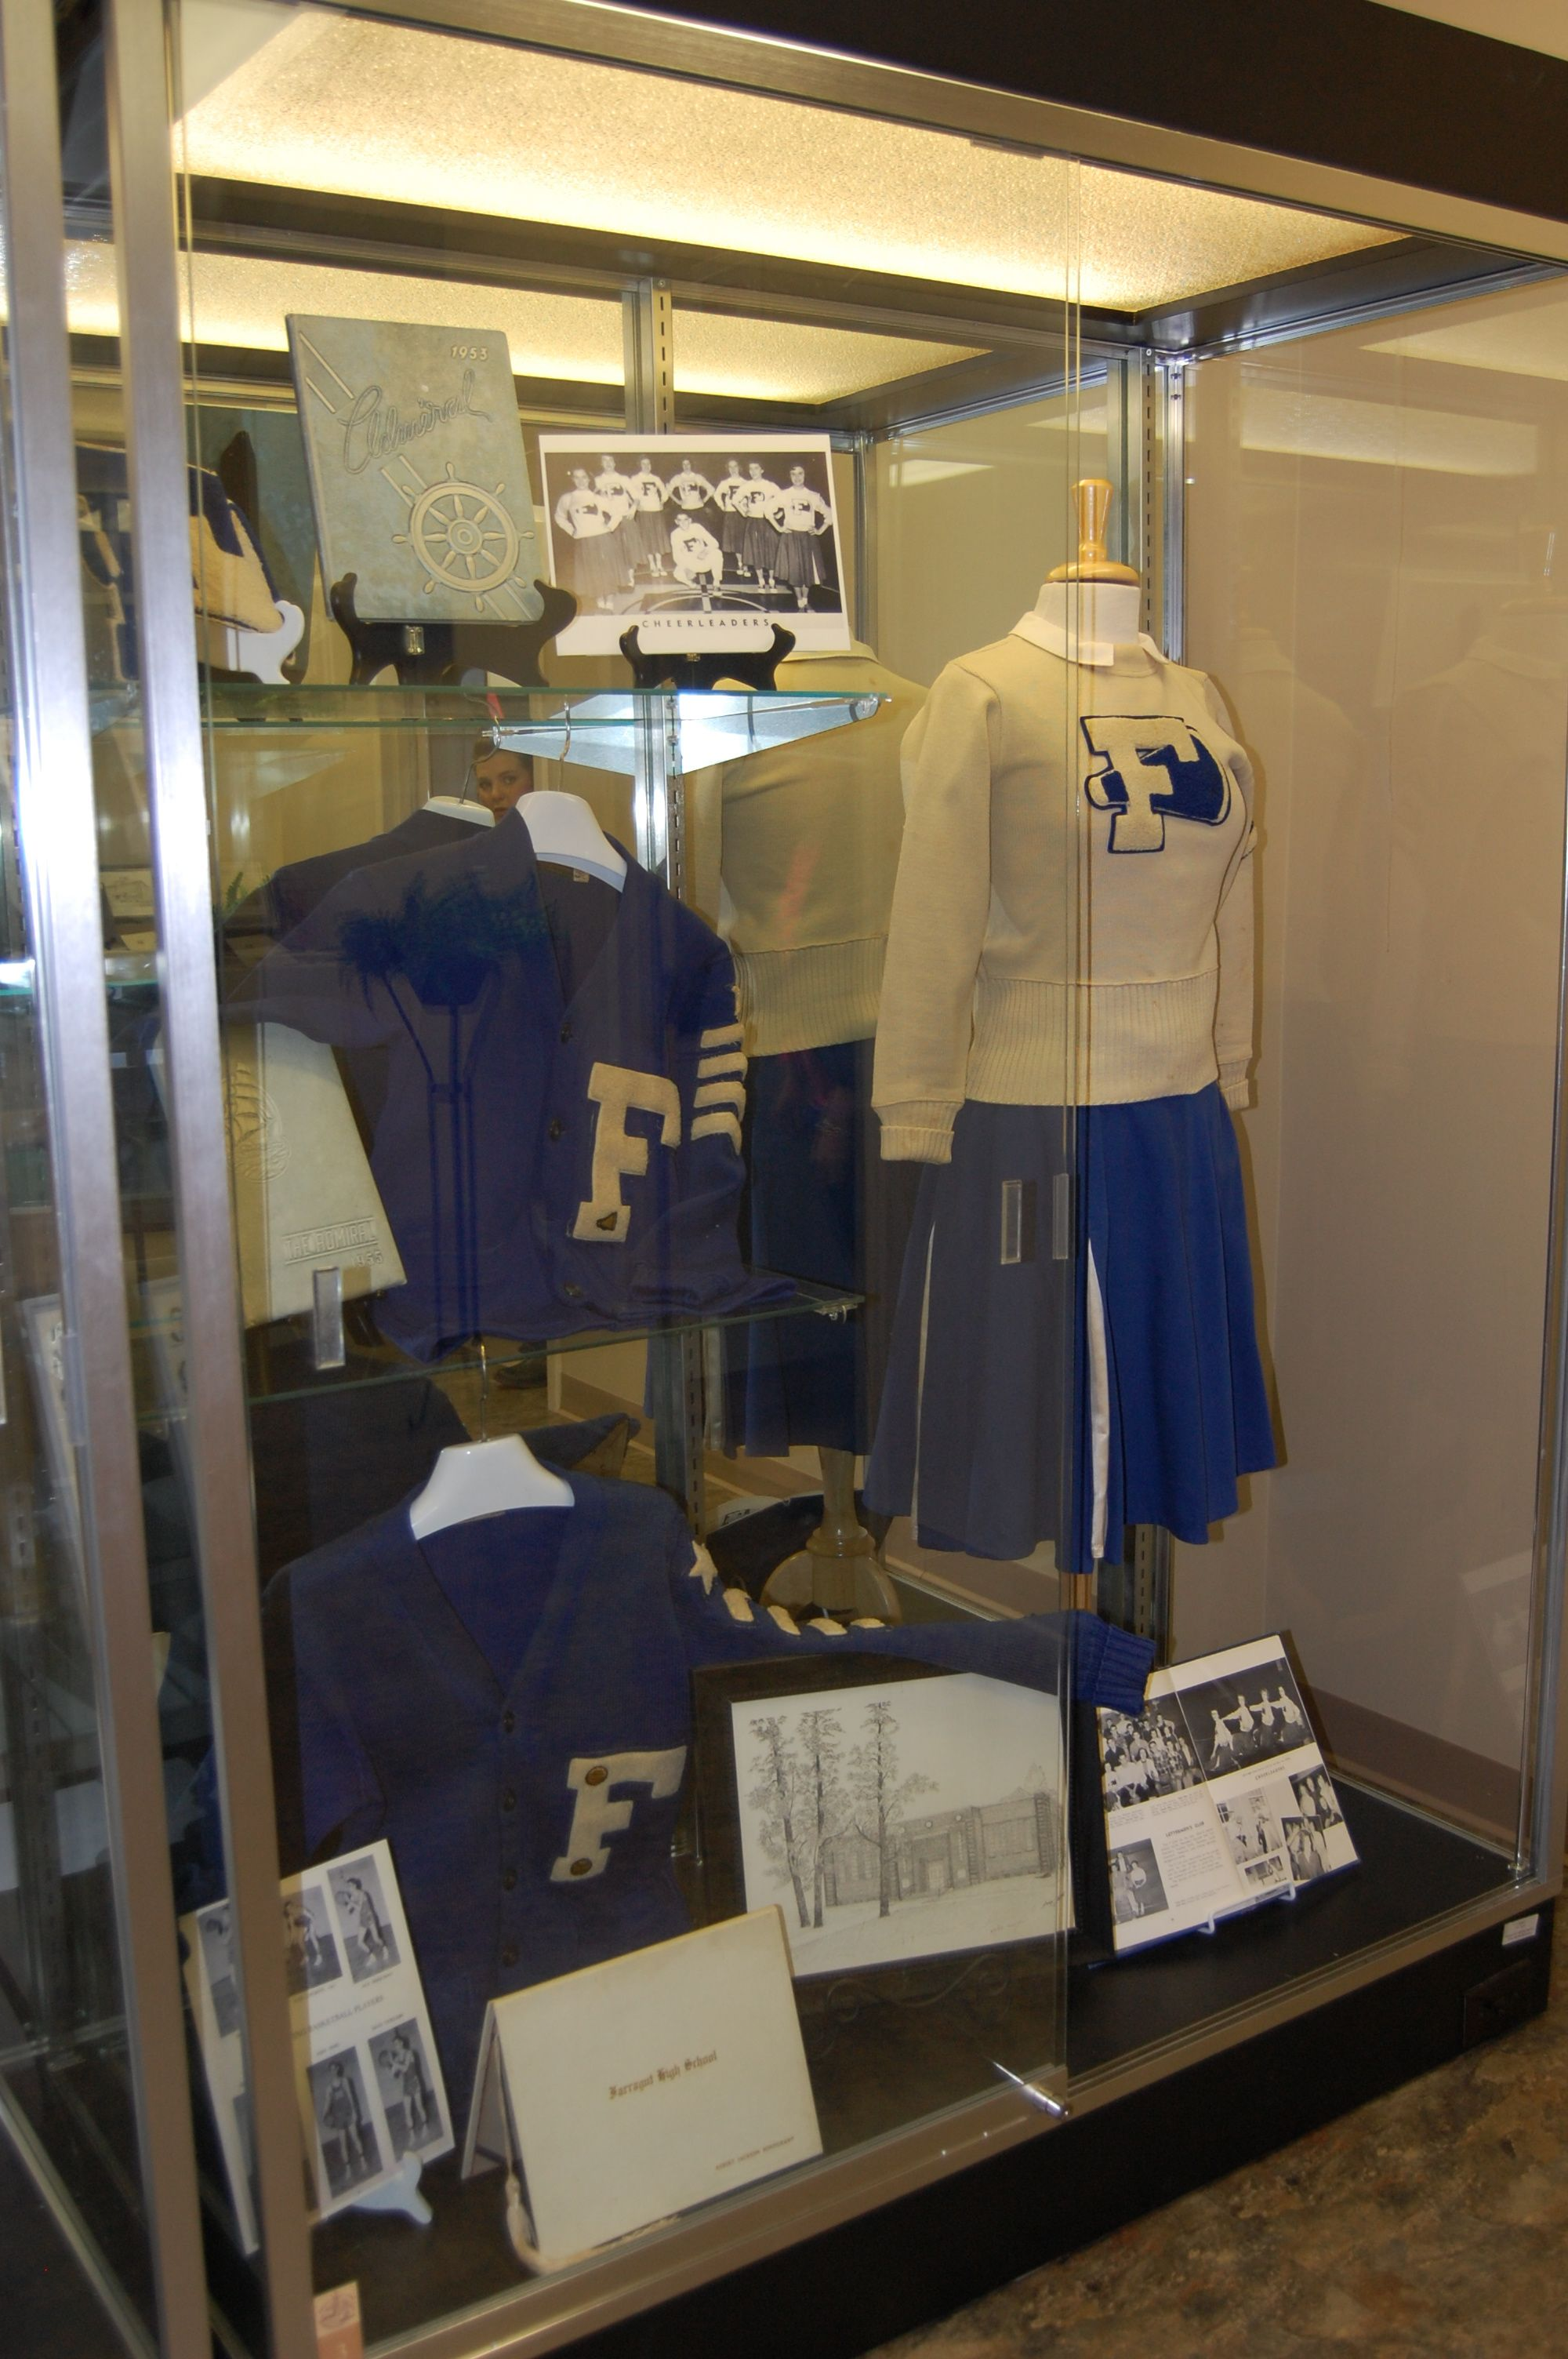 The Museum hosted a special exhibit featuring memorabilia from the Farragut schools from January to May 2013.